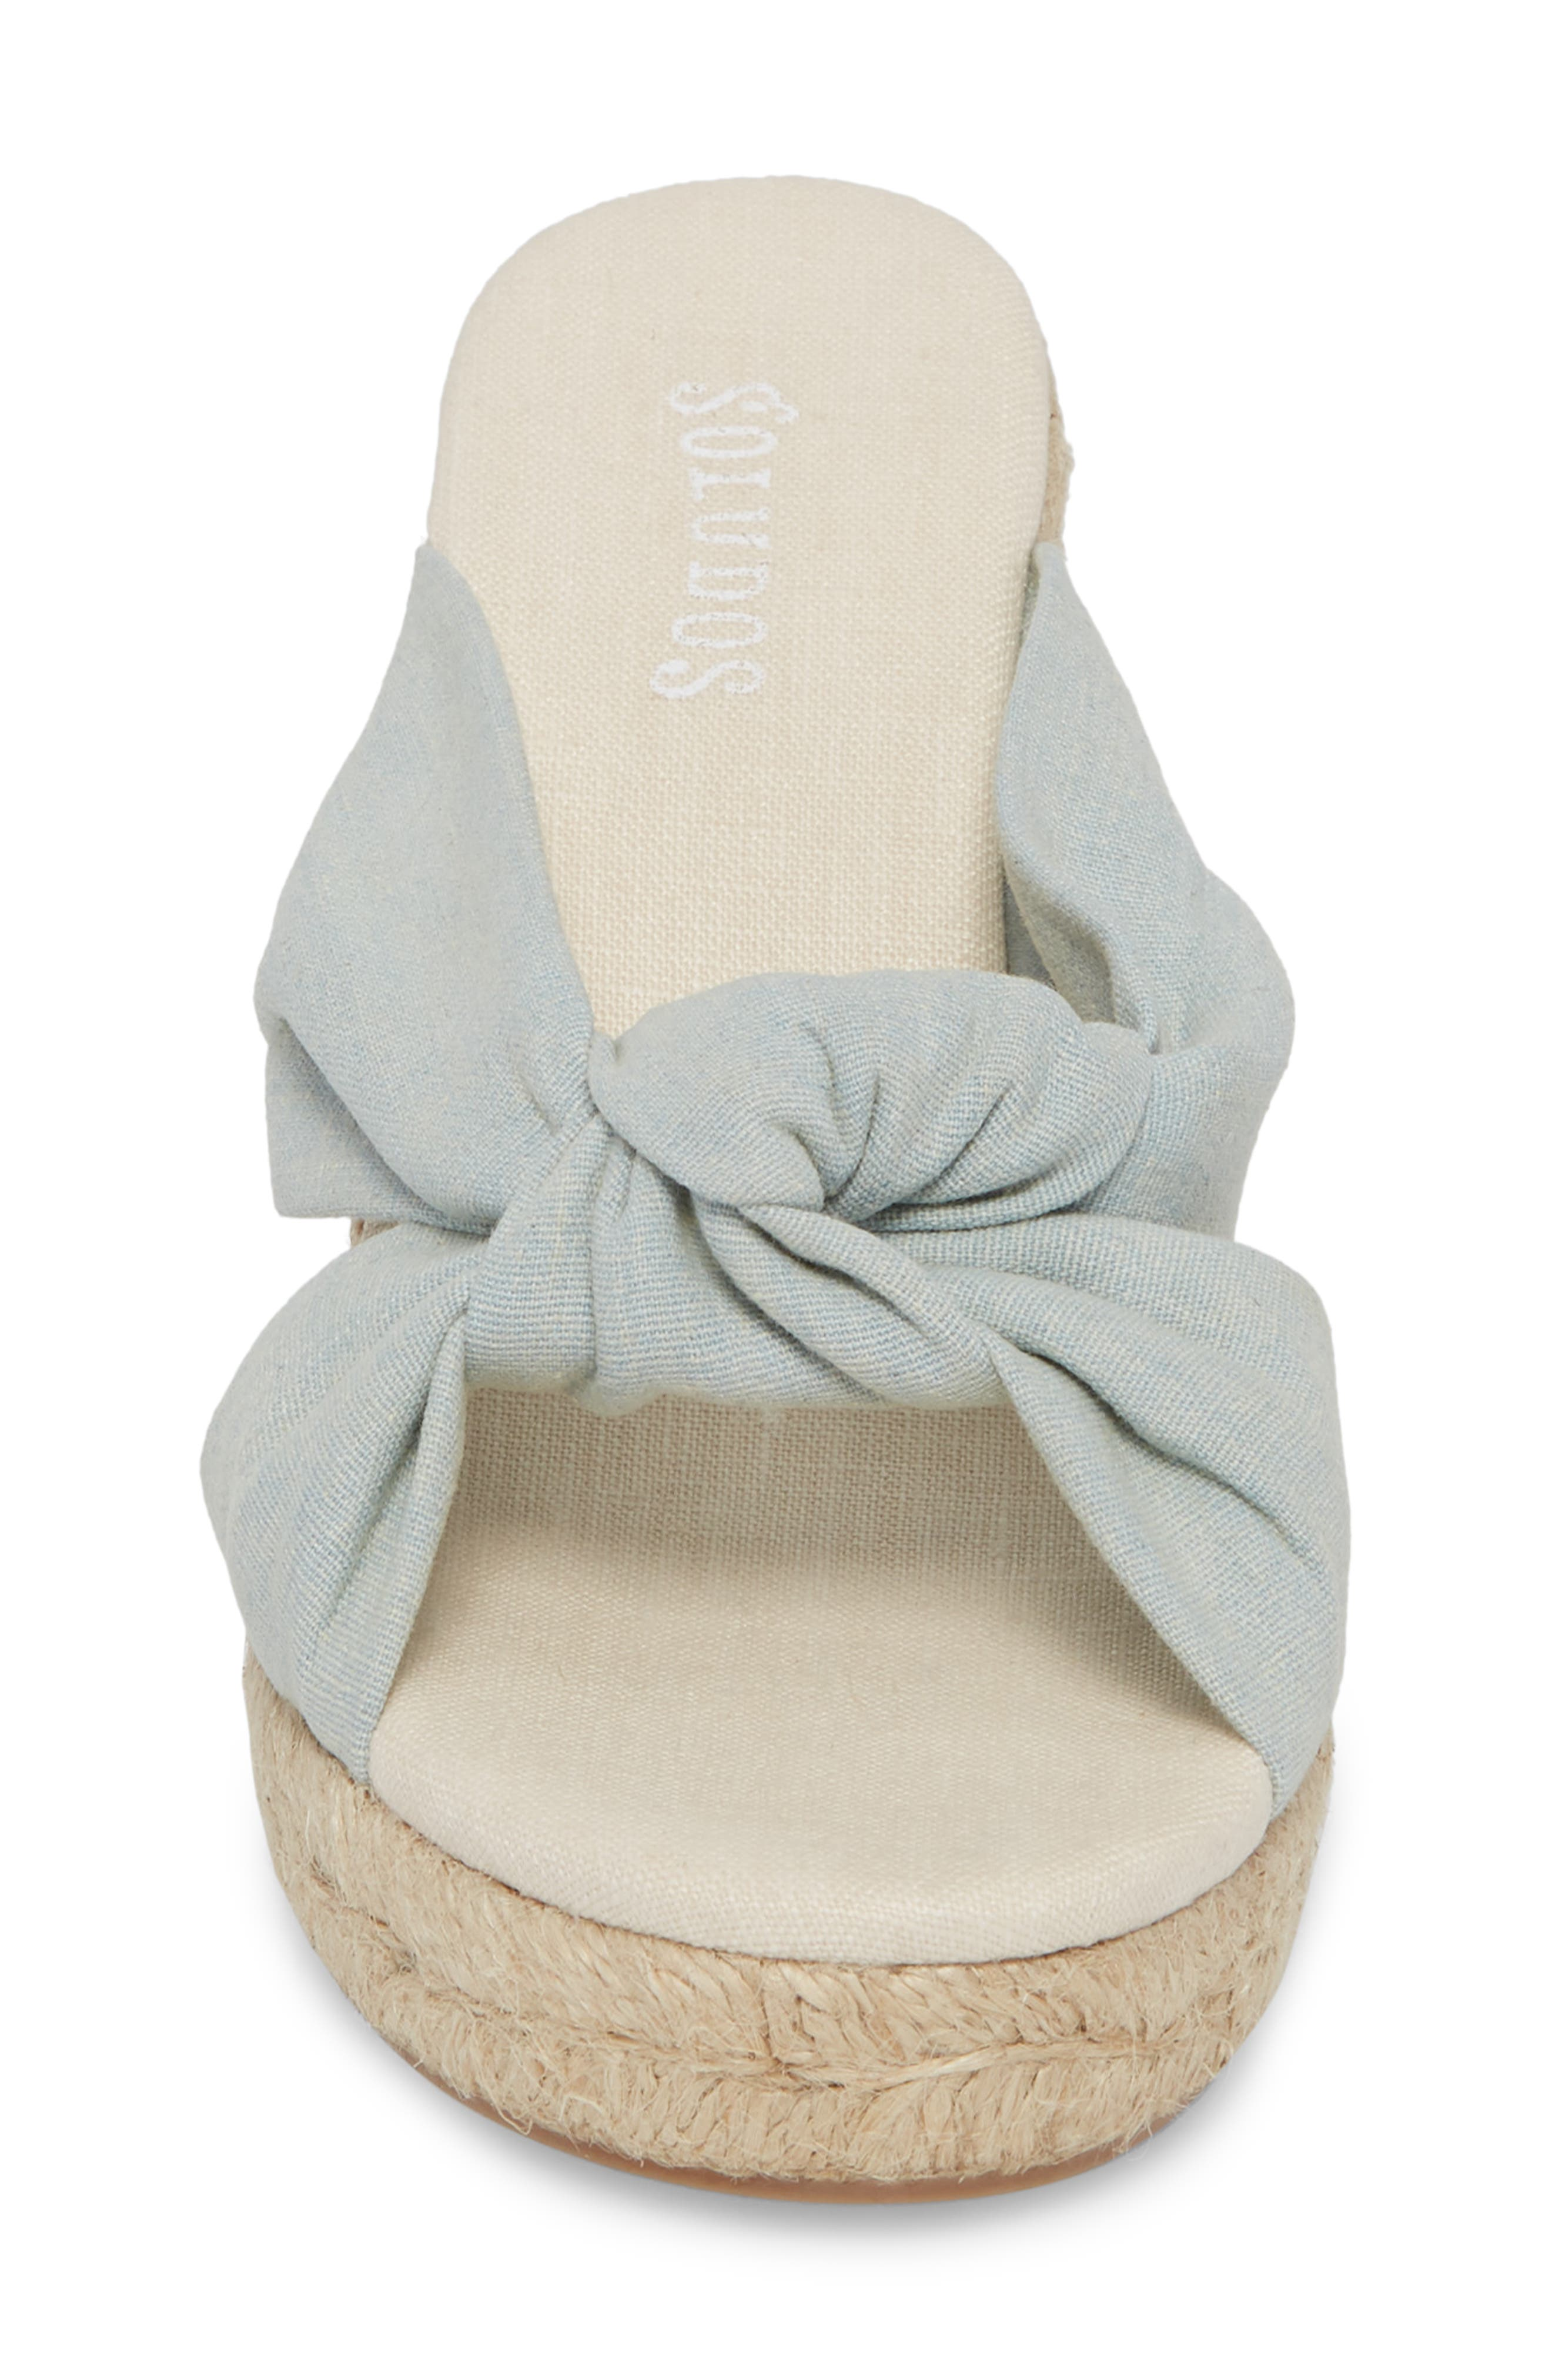 Knotted Espadrille Wedge Sandal,                             Alternate thumbnail 4, color,                             Chambray